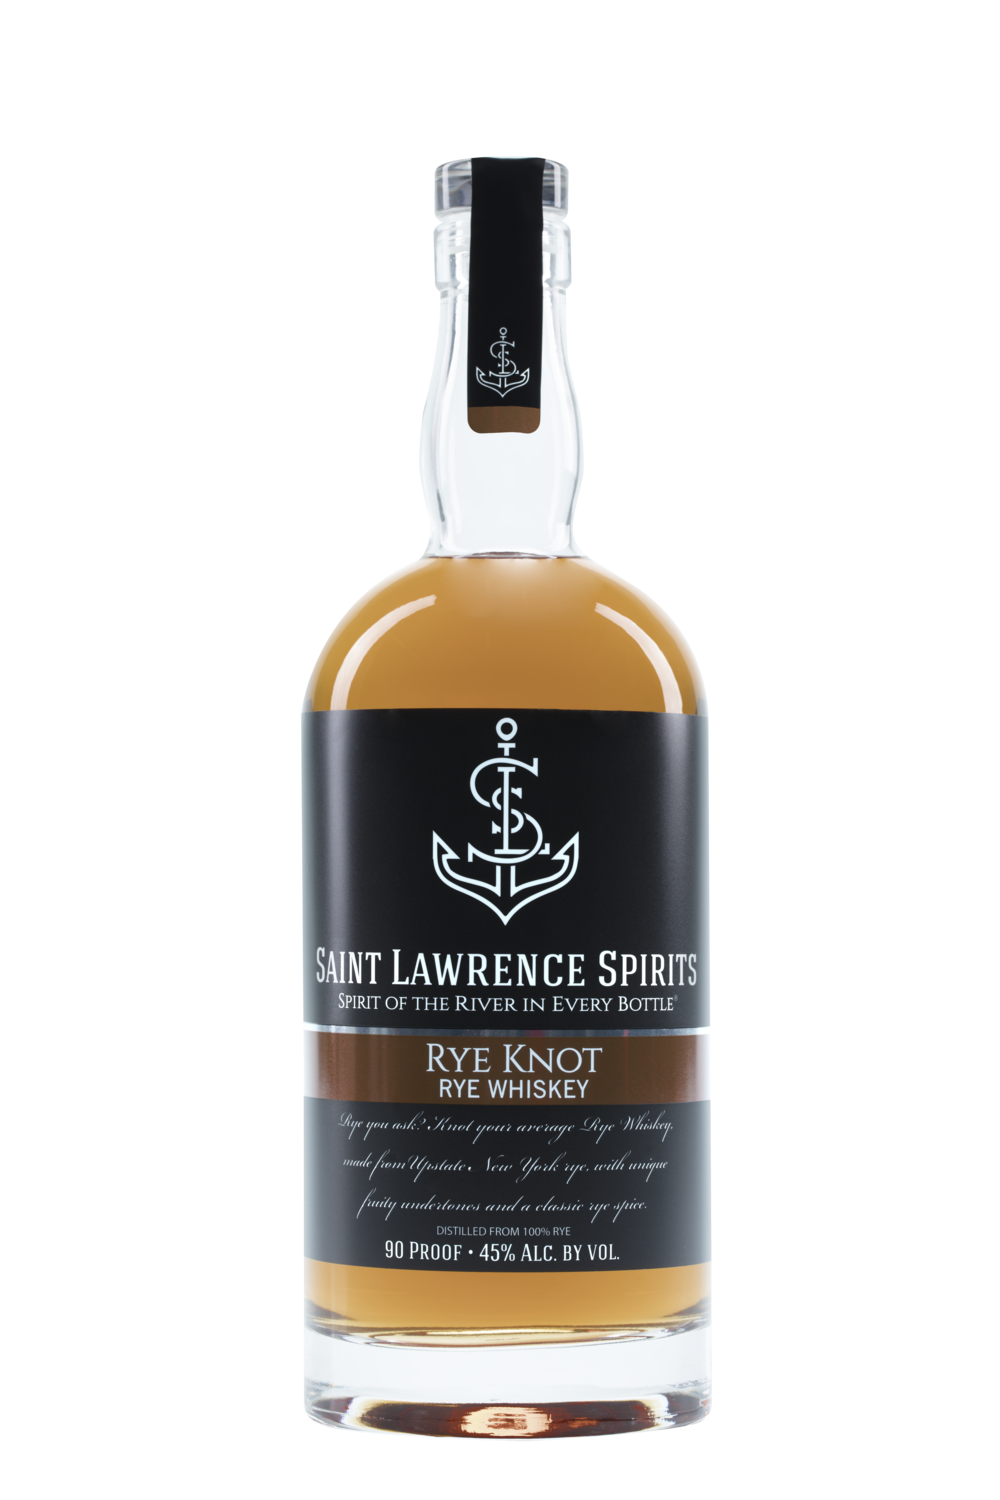 Rye Knot Rye Whiskey - 90 Proof. Smooth, Pepper, Ripe Fruit.